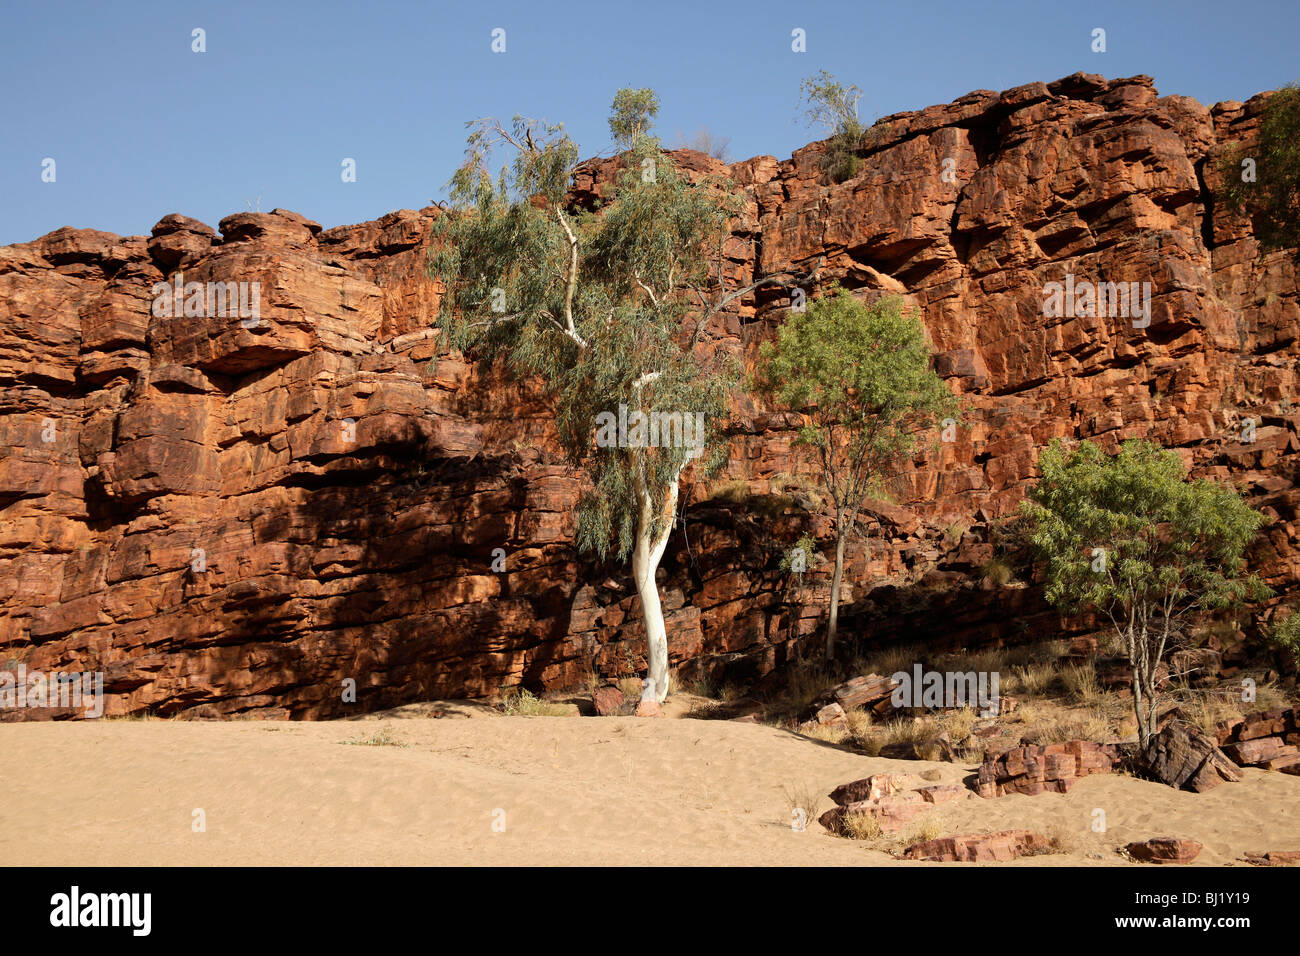 Trephina Gorge Nature Park in the East MacDonnell Ranges, Northern Territory, Australia - Stock Image